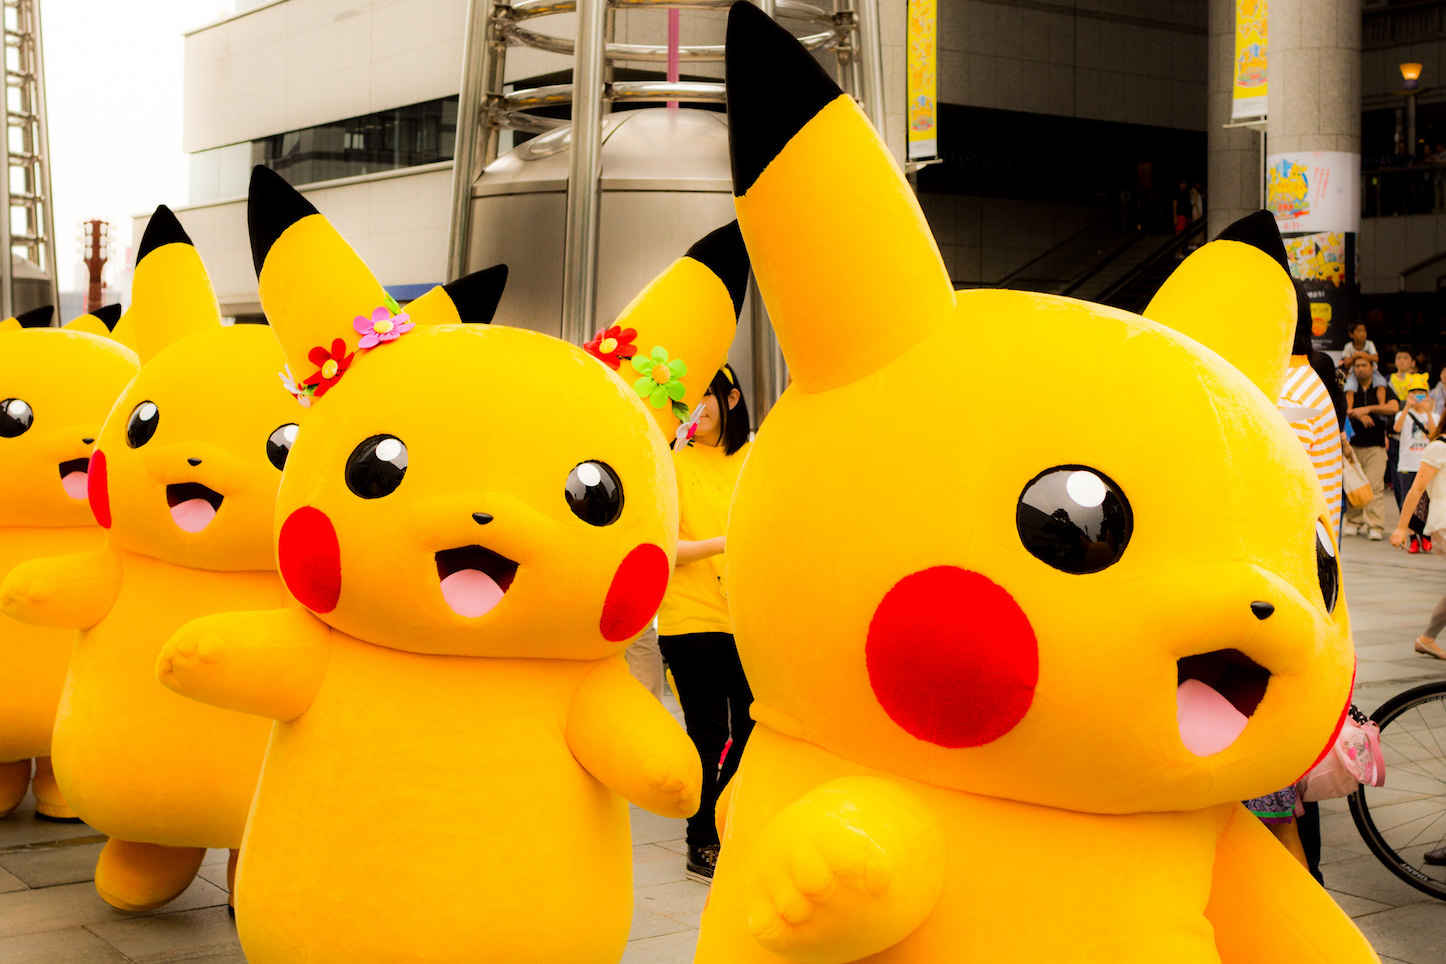 Lots of pikachu walking around